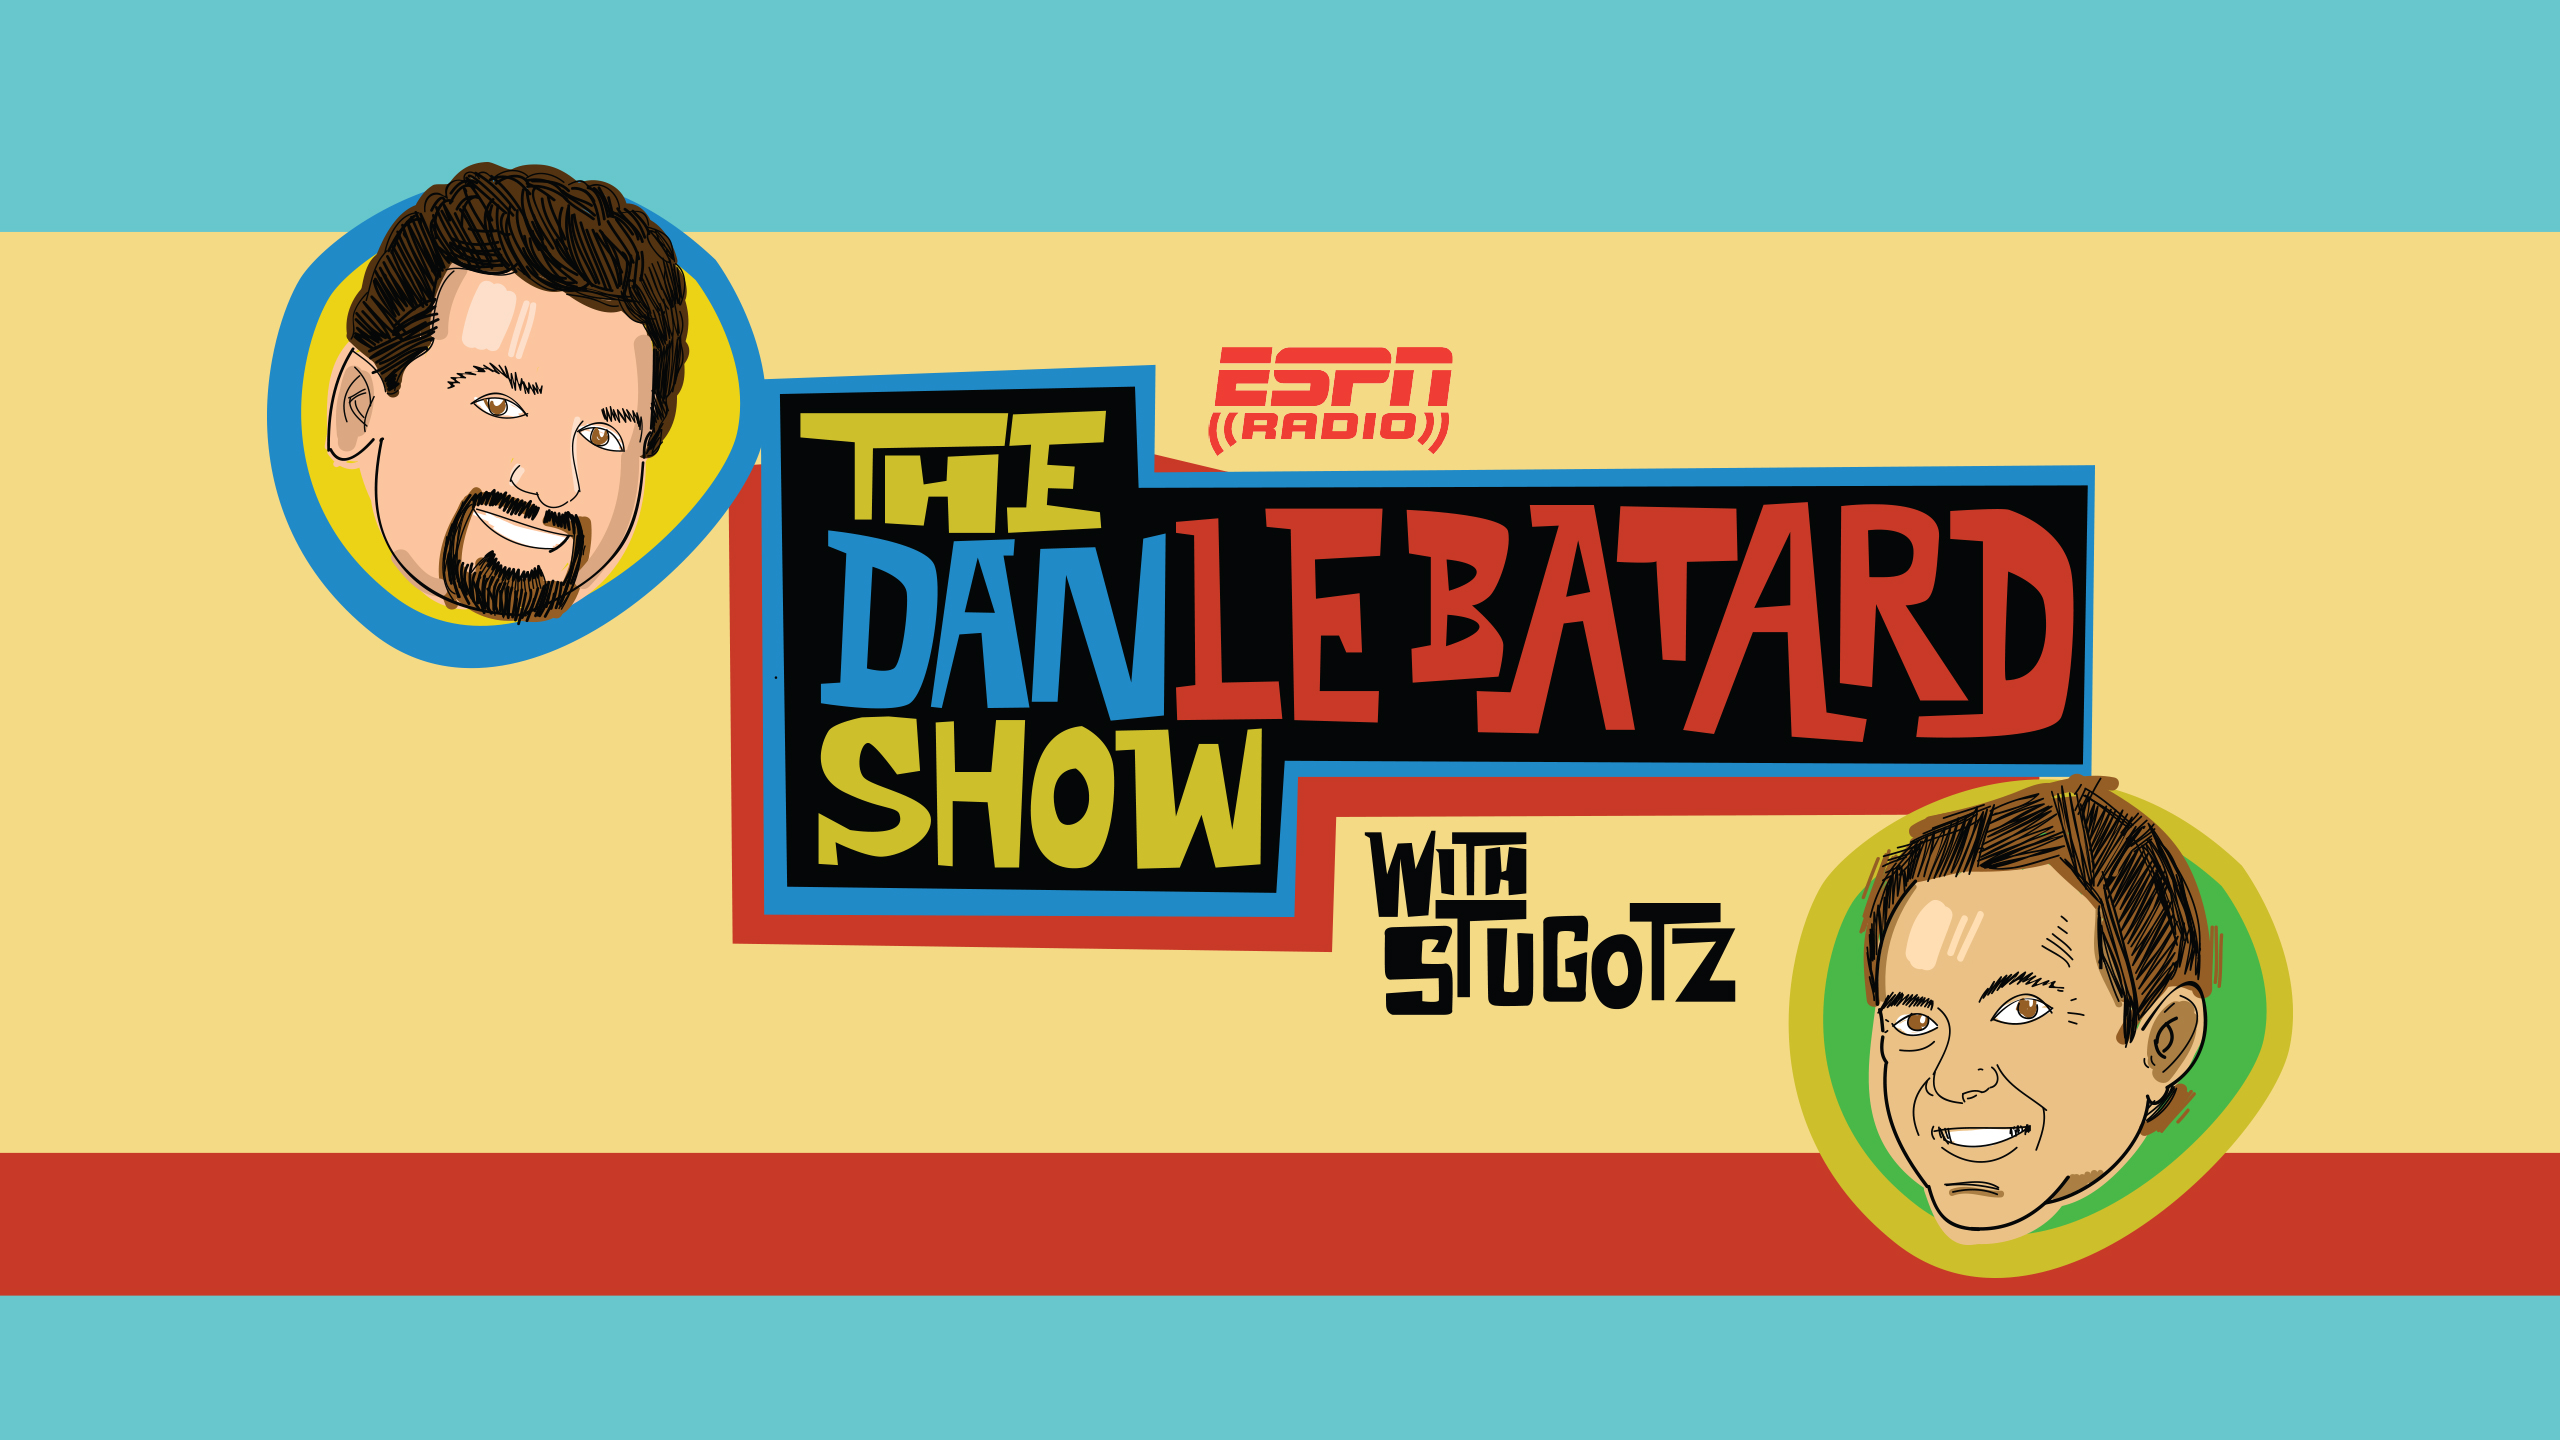 Fri, 4/19 - The Dan Le Batard Show with Stugotz Presented by Progressive